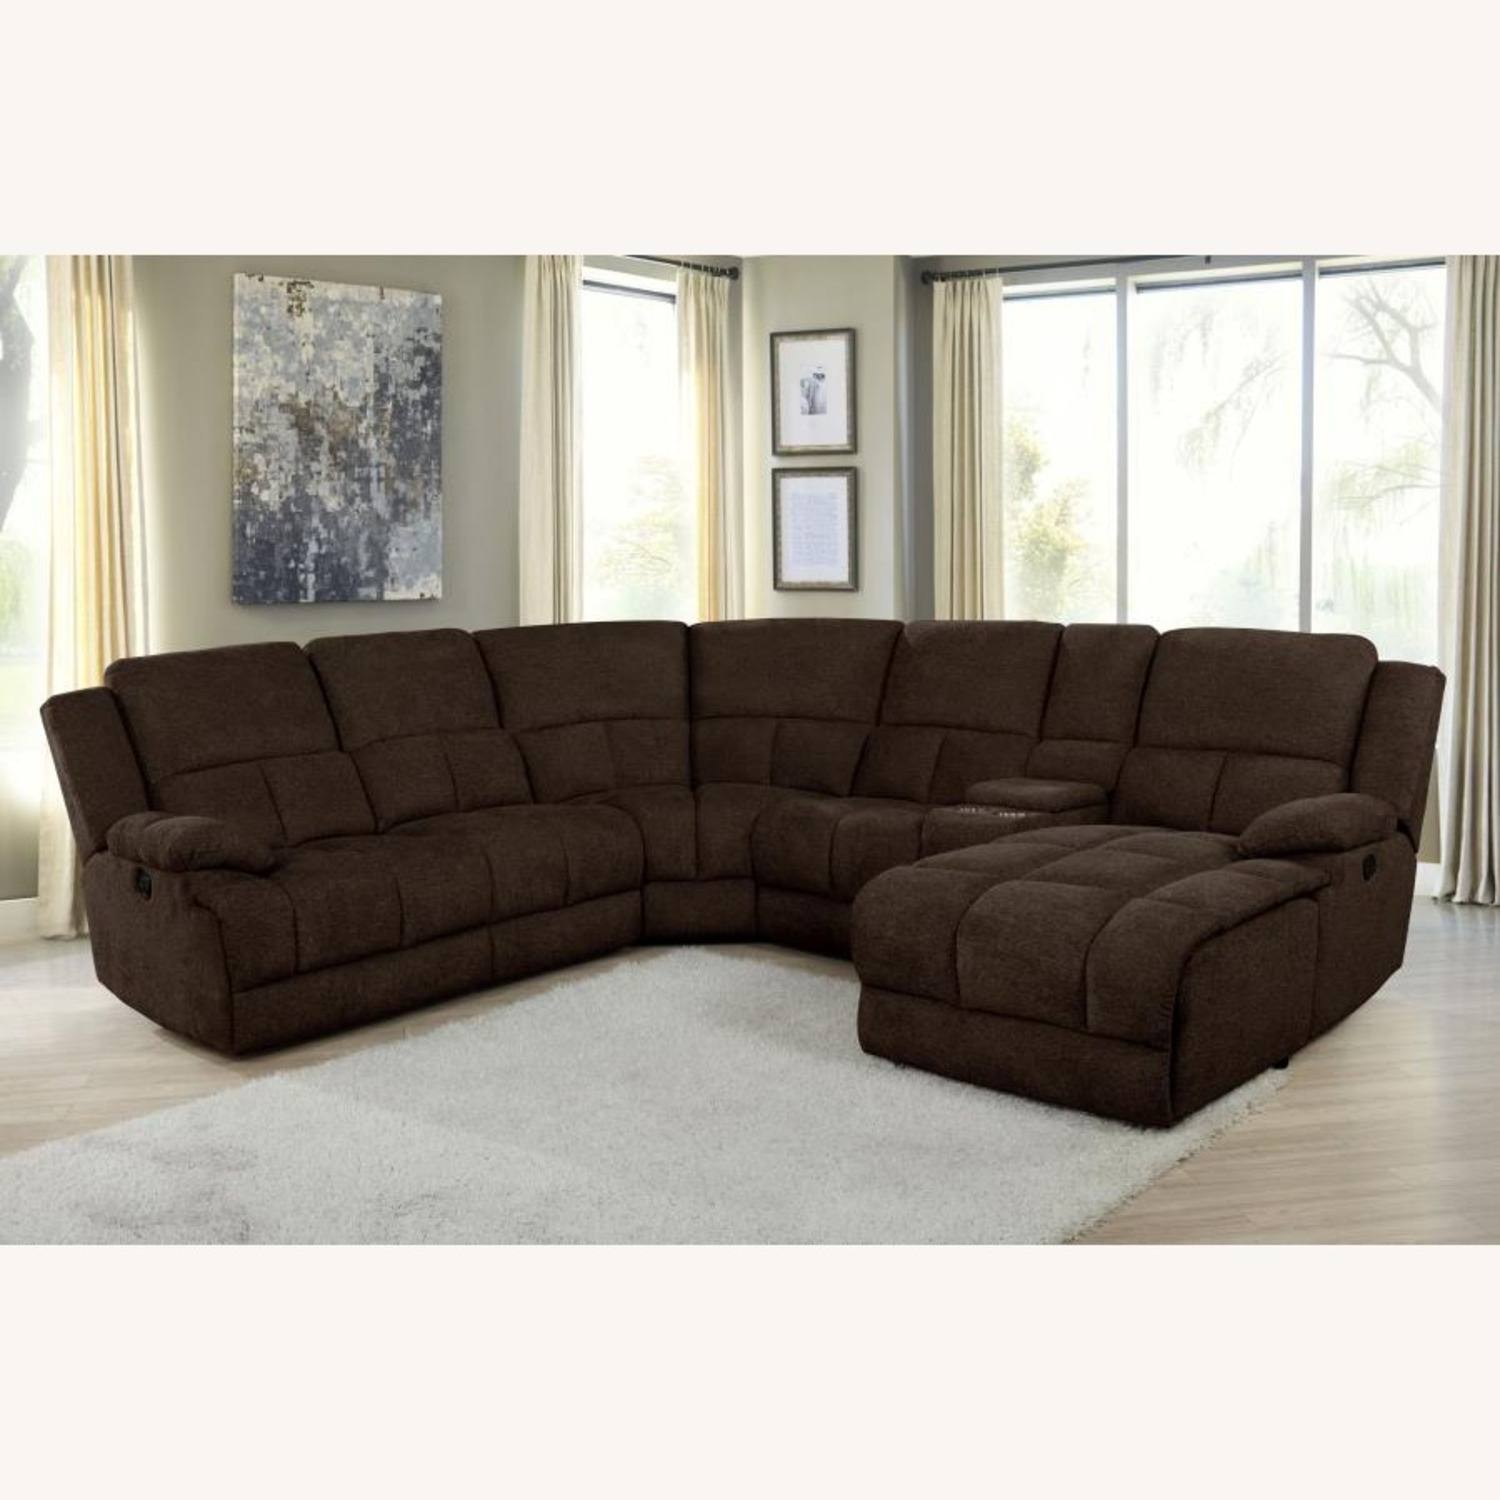 Motion Sectional In Brown Performance Fabric - image-14